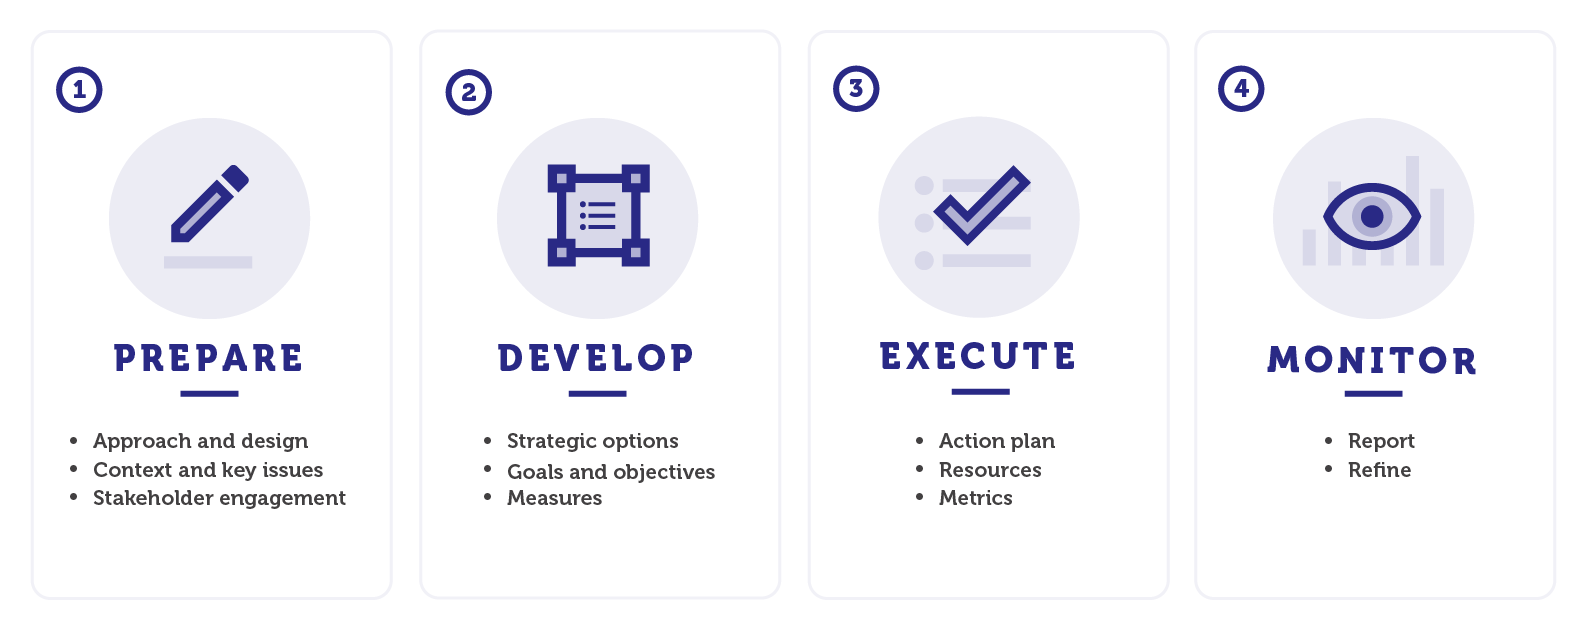 The four phases of strategic planning: prepare, develop, execute and monitor